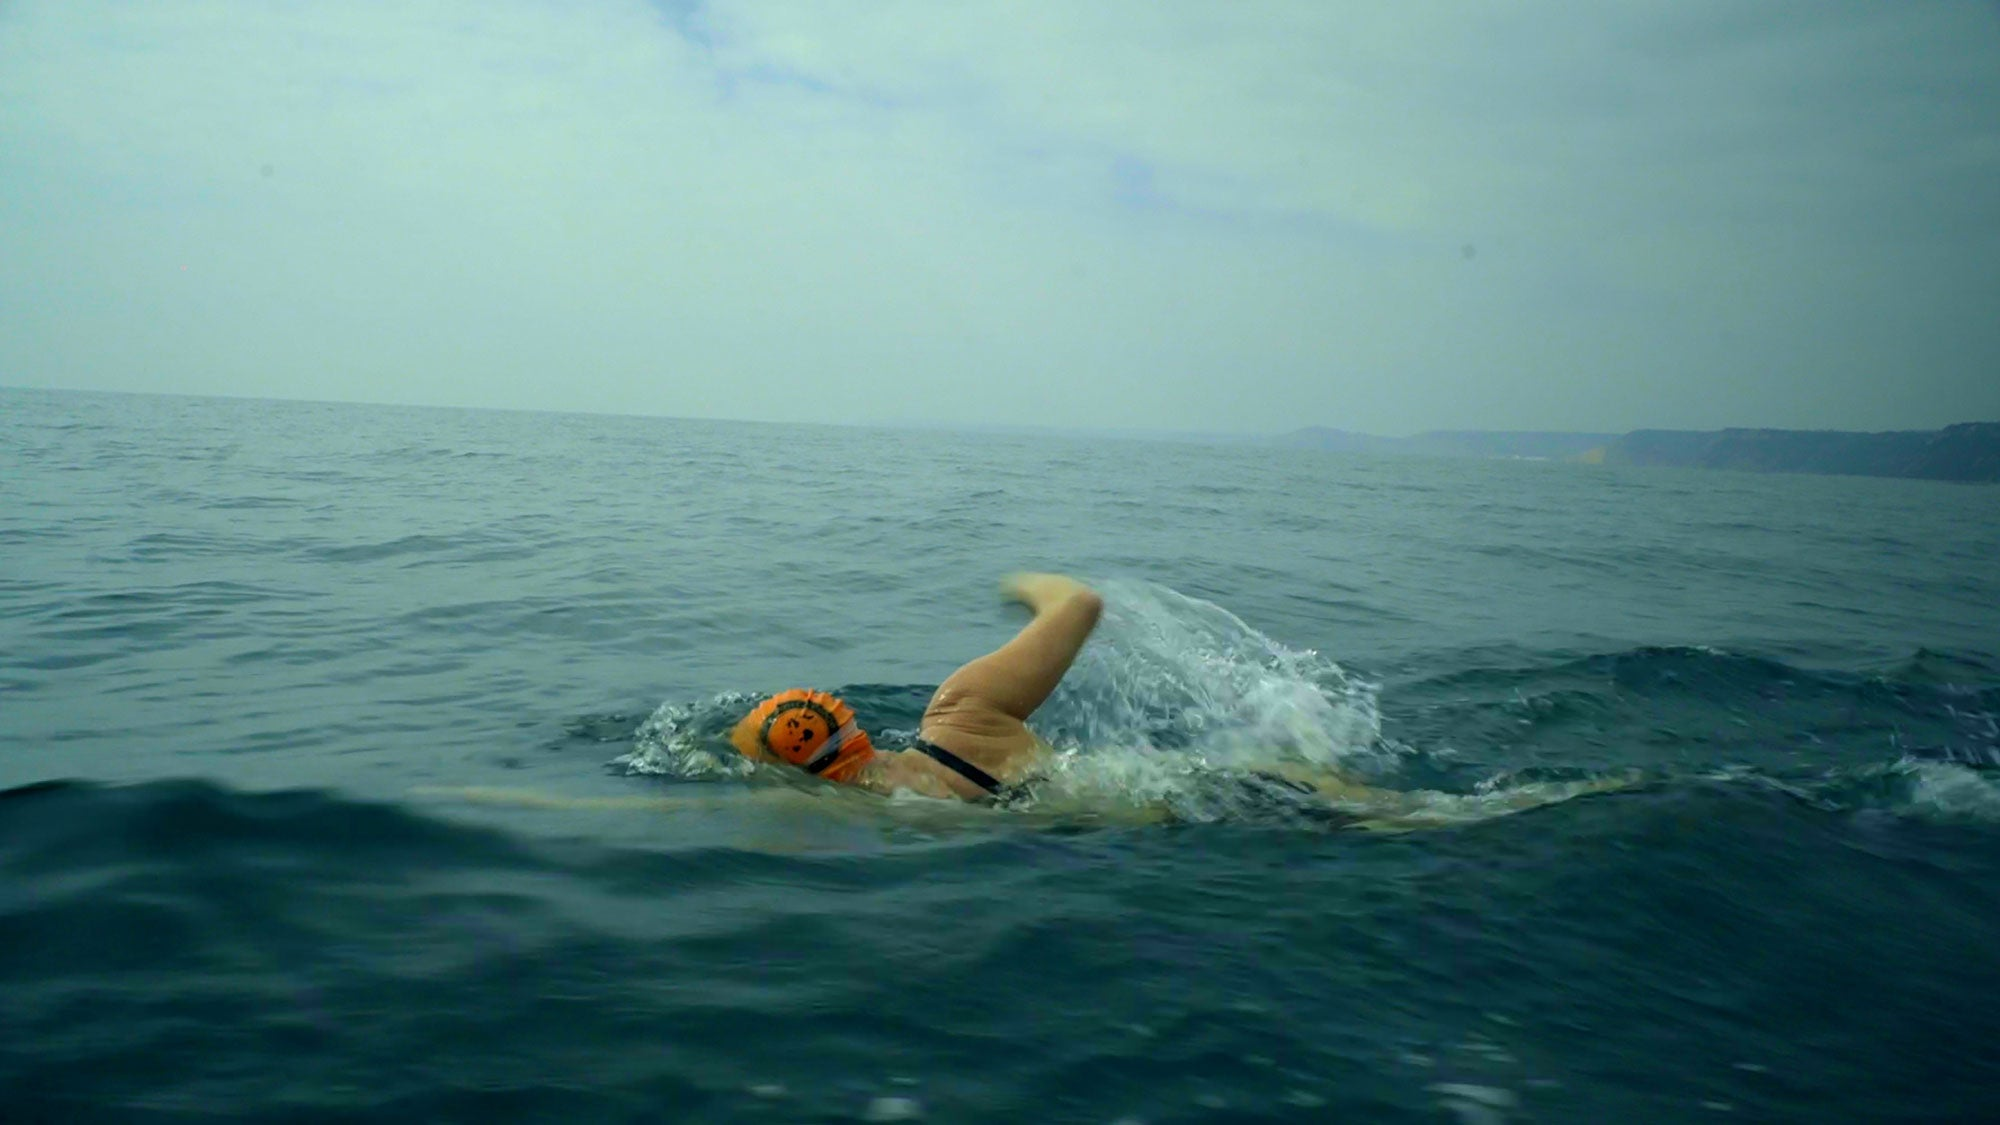 Beth French Swimming powerfully in open waters on the Oceans 7 challenge